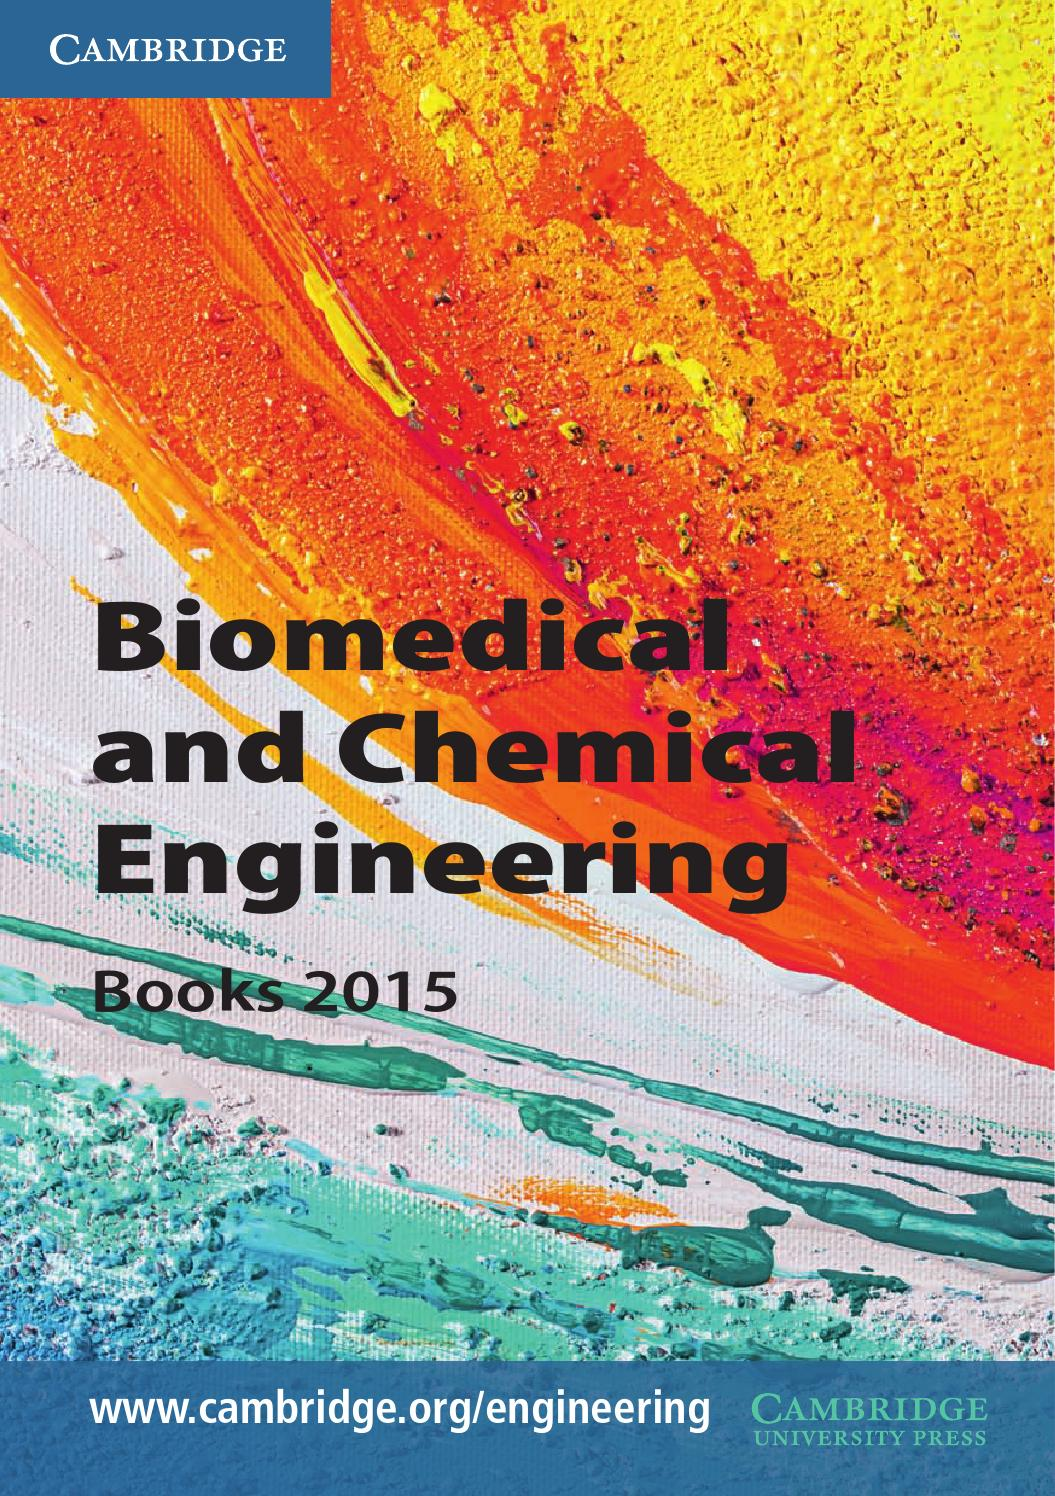 Biomedical and Chemical Engineering Books 2015 by Cambridge University Press  - issuu